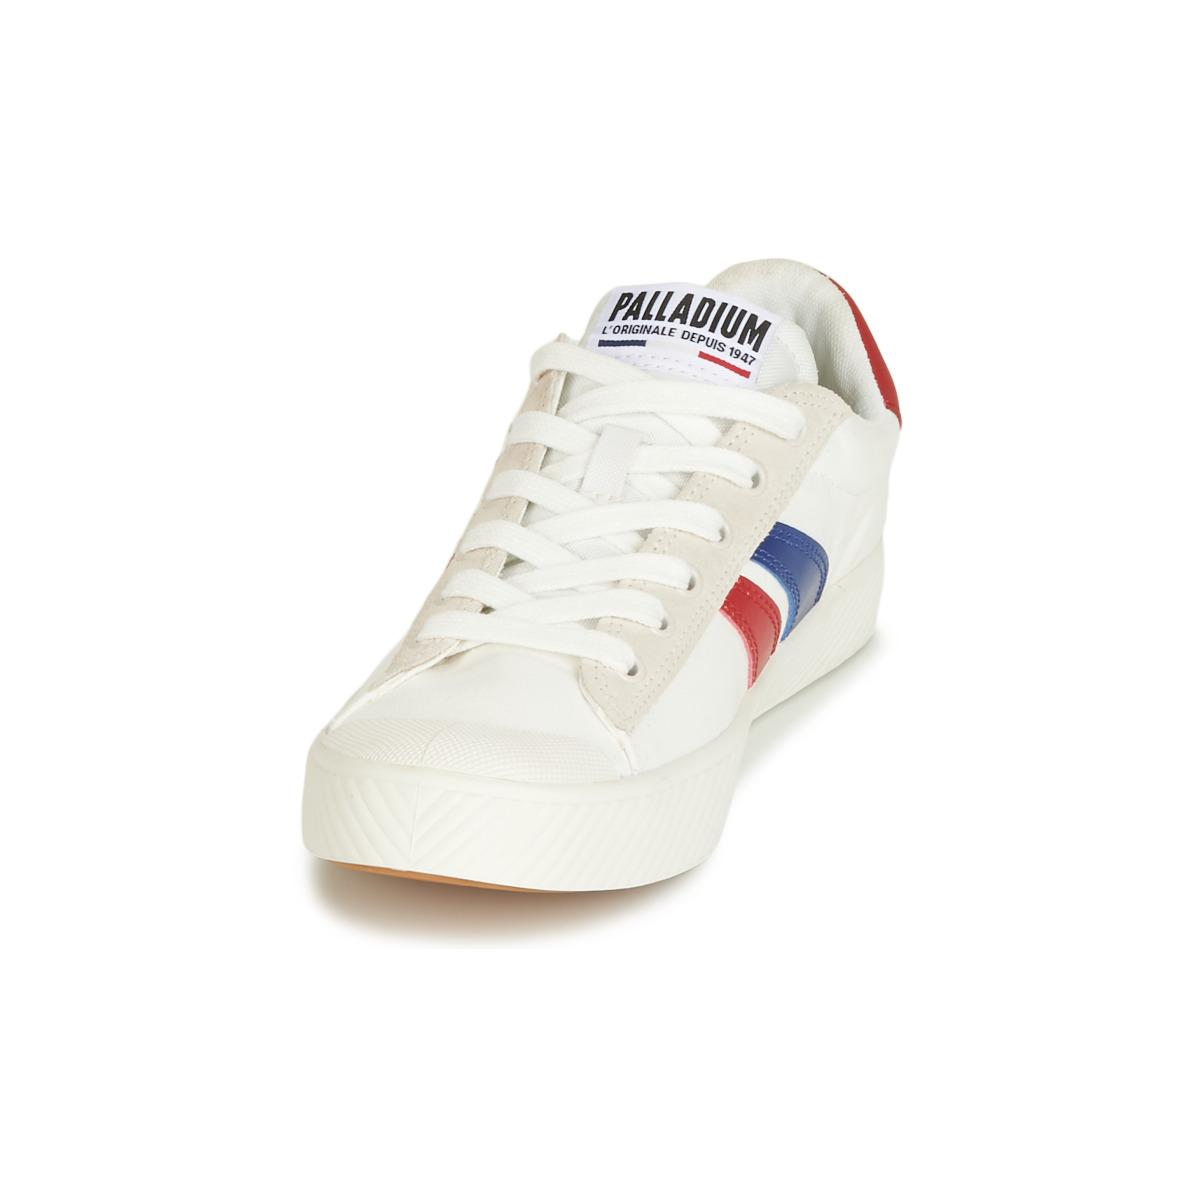 Palladium - Pallaphoenix Flame C Women s Shoes (trainers) In White - Lyst.  View fullscreen f4bd29ac4